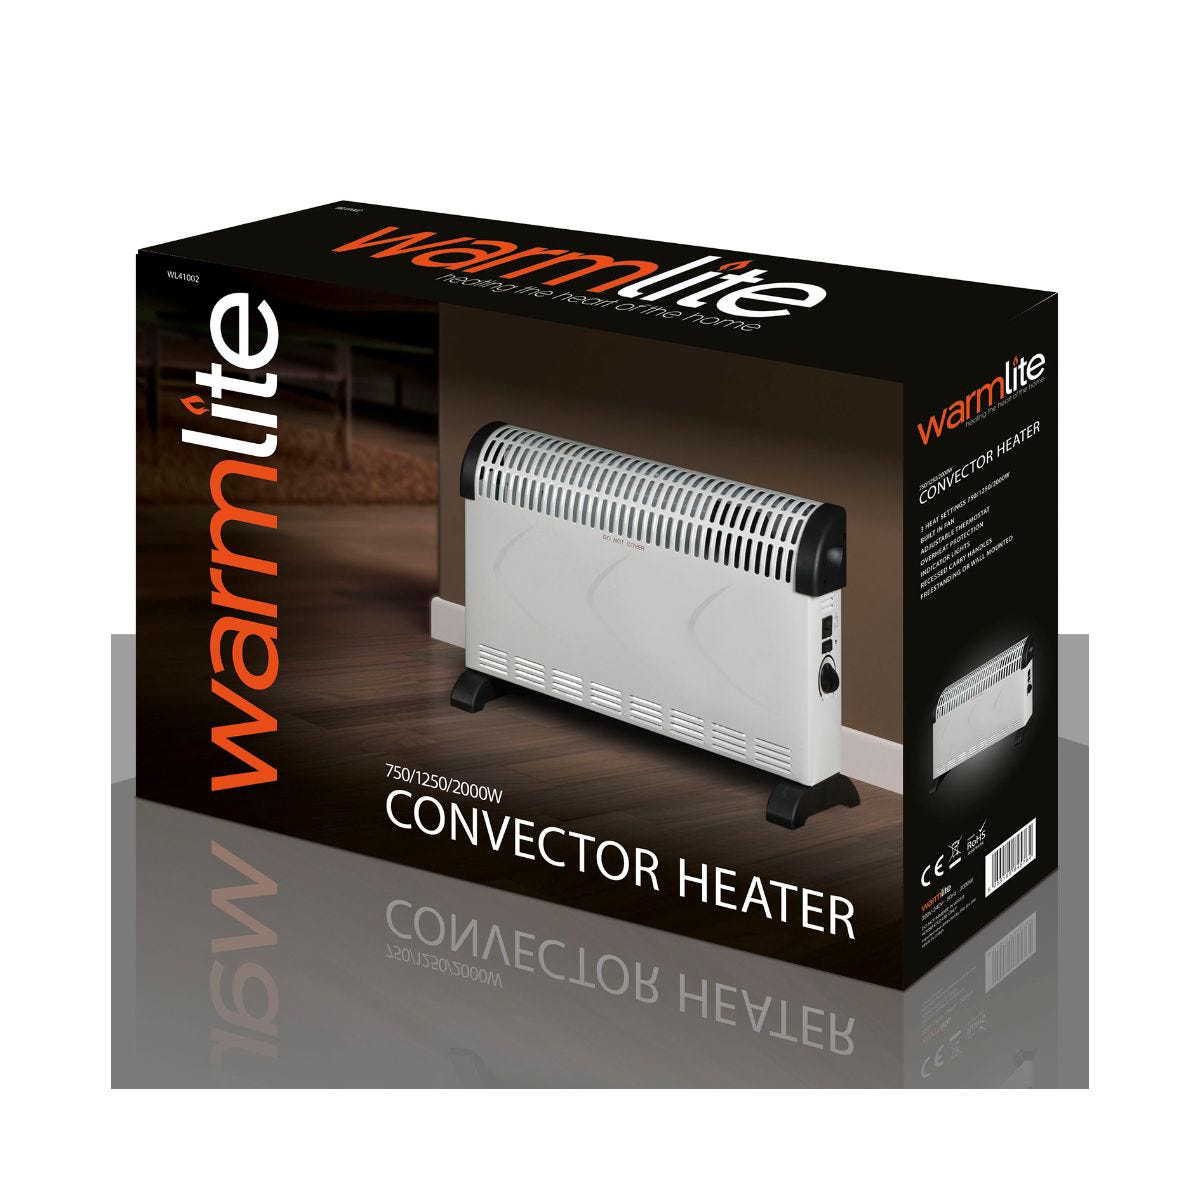 Image of 2000W Convection Heater